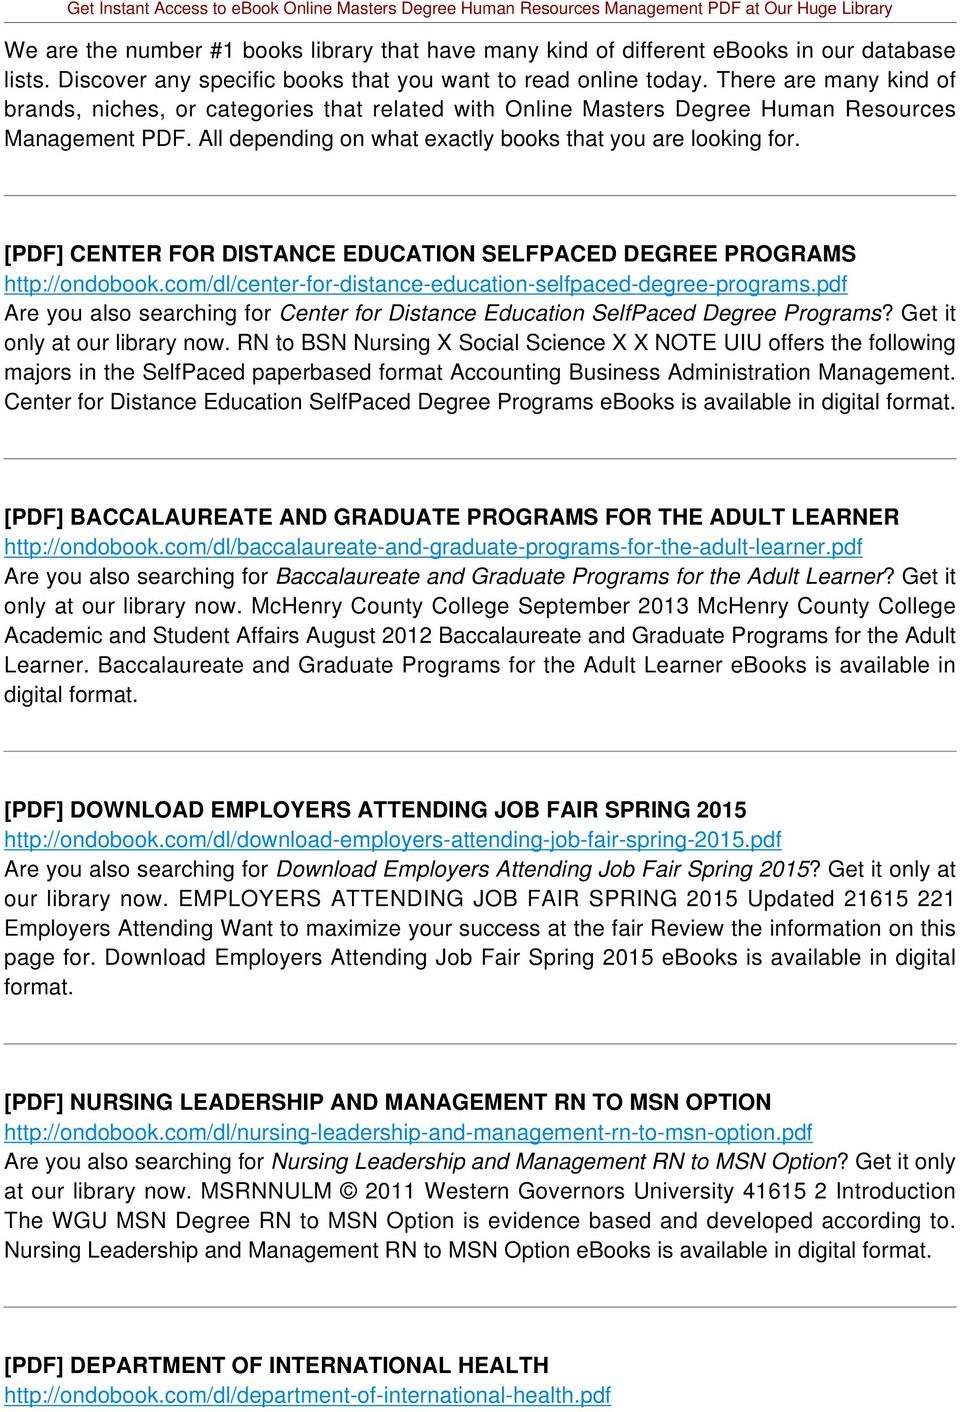 [PDF] CENTER FOR DISTANCE EDUCATION SELFPACED DEGREE PROGRAMS http://ondobook.com/dl/center-for-distance-education-selfpaced-degree-programs.